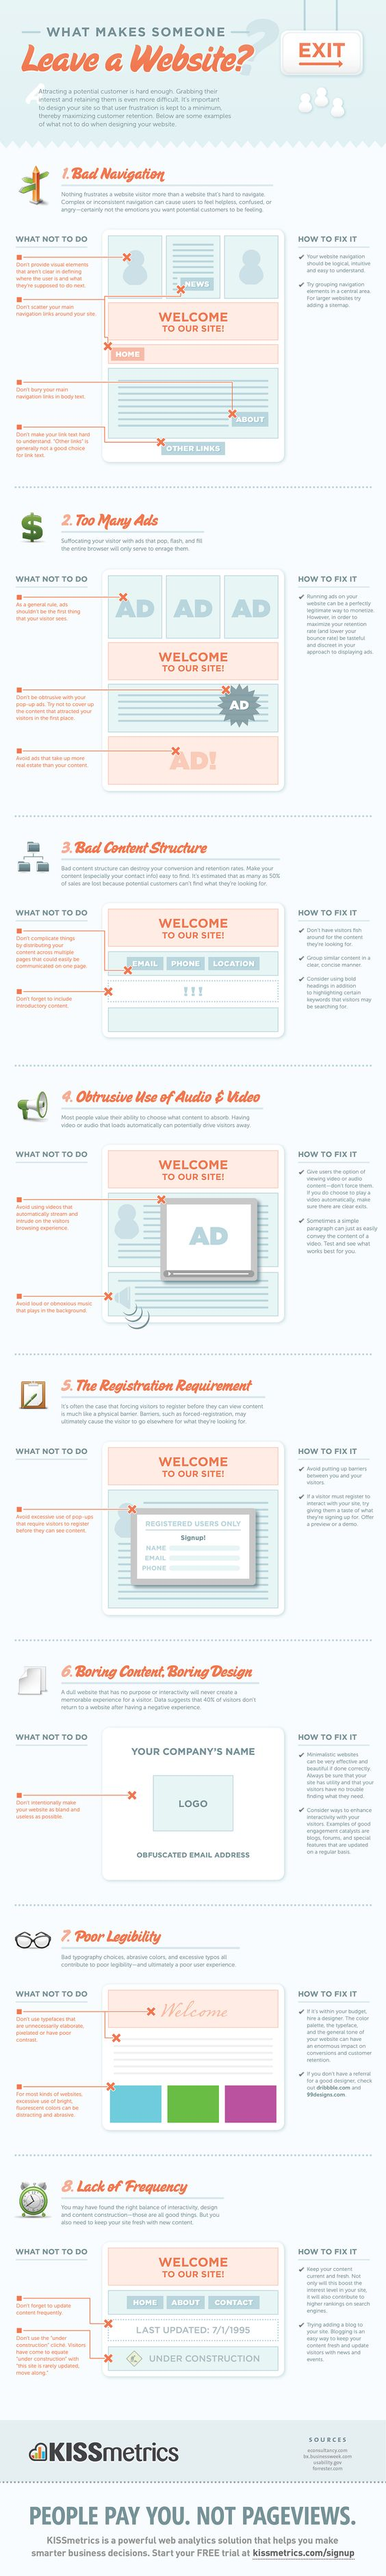 What Makes Someone Leave a Website?:  Internet Site, Web Design, Design Infographic, Web Site, Social Media, Website Design, Leave Website, Marketing Infographic